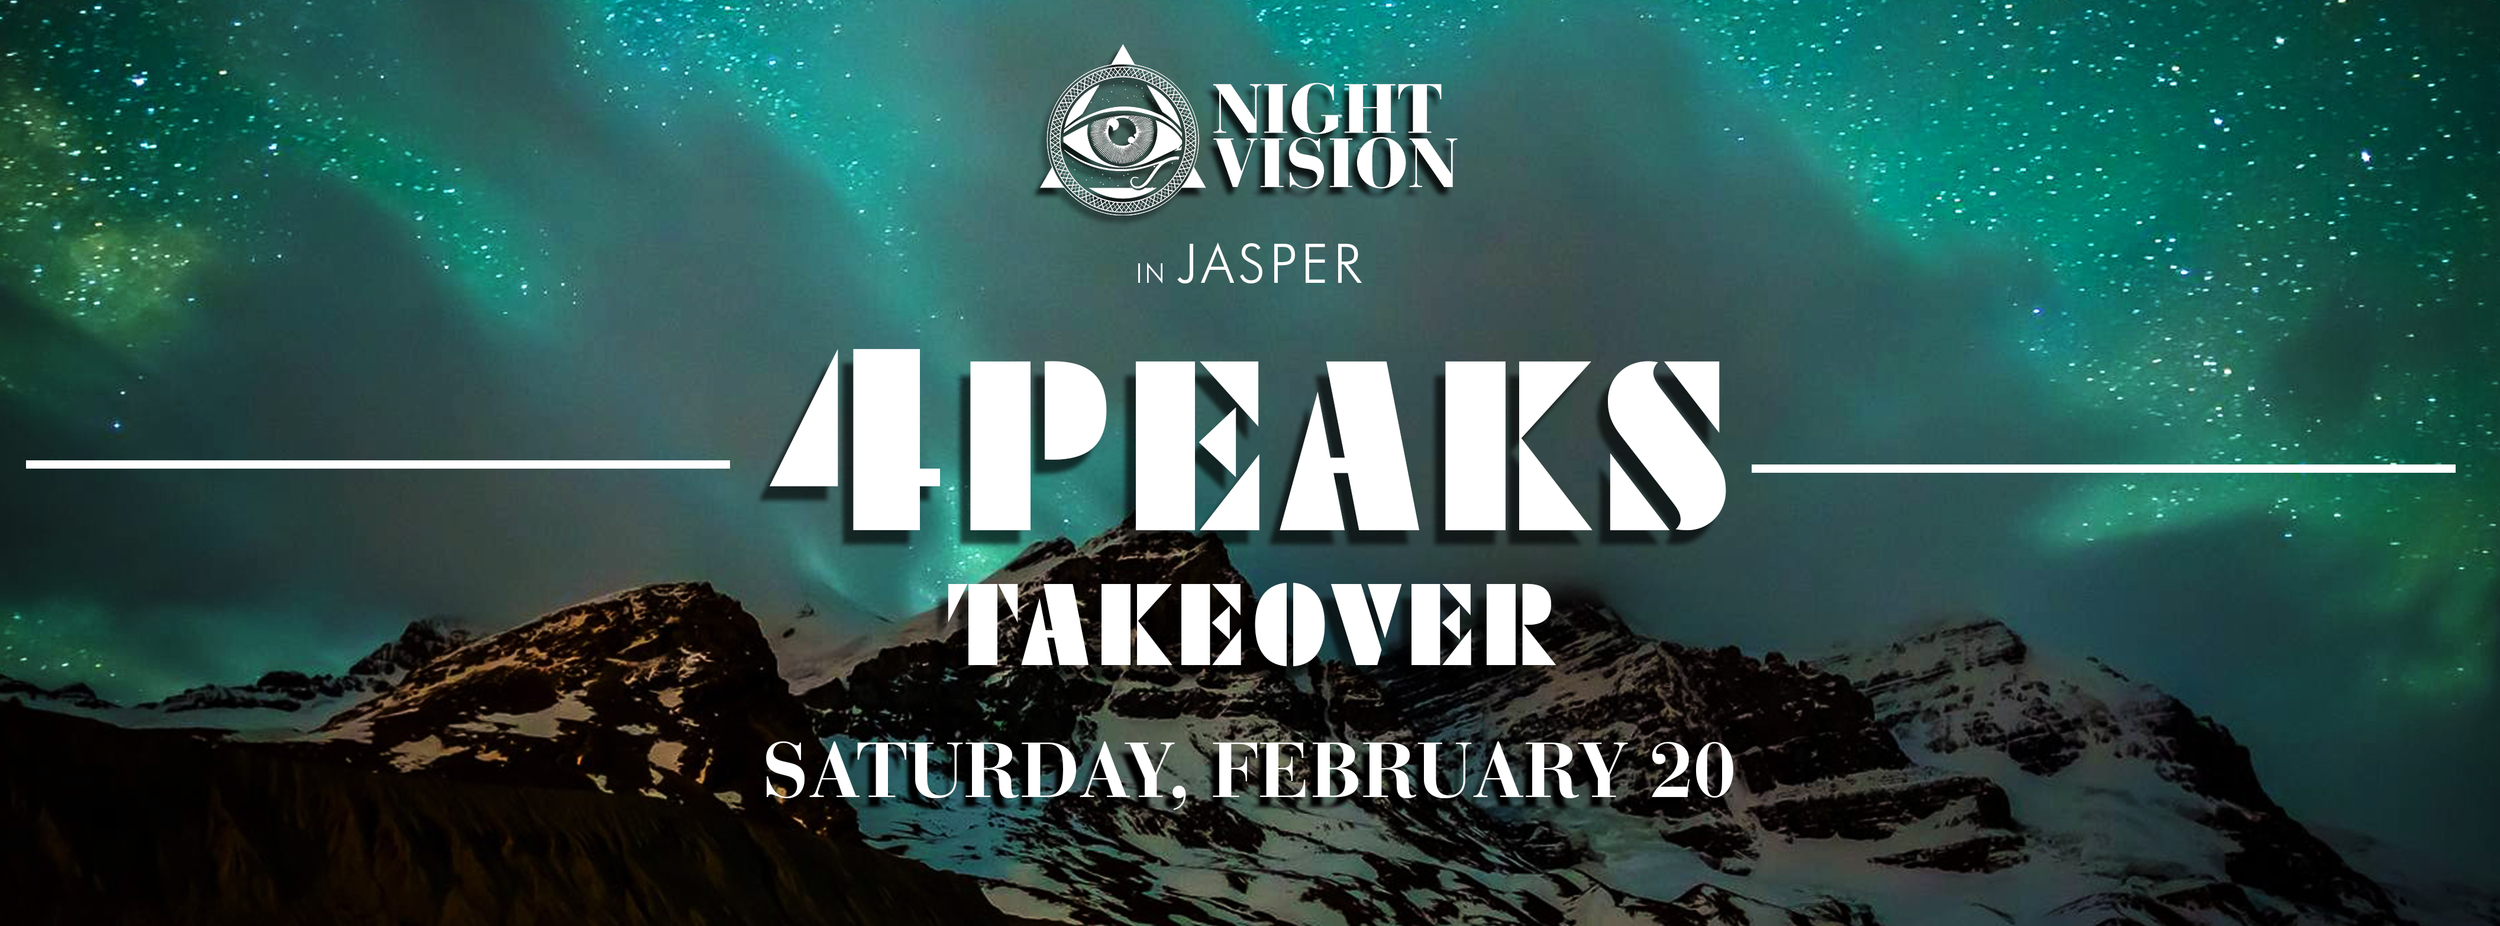 4Peaks Jasper, Night Vision Takeover